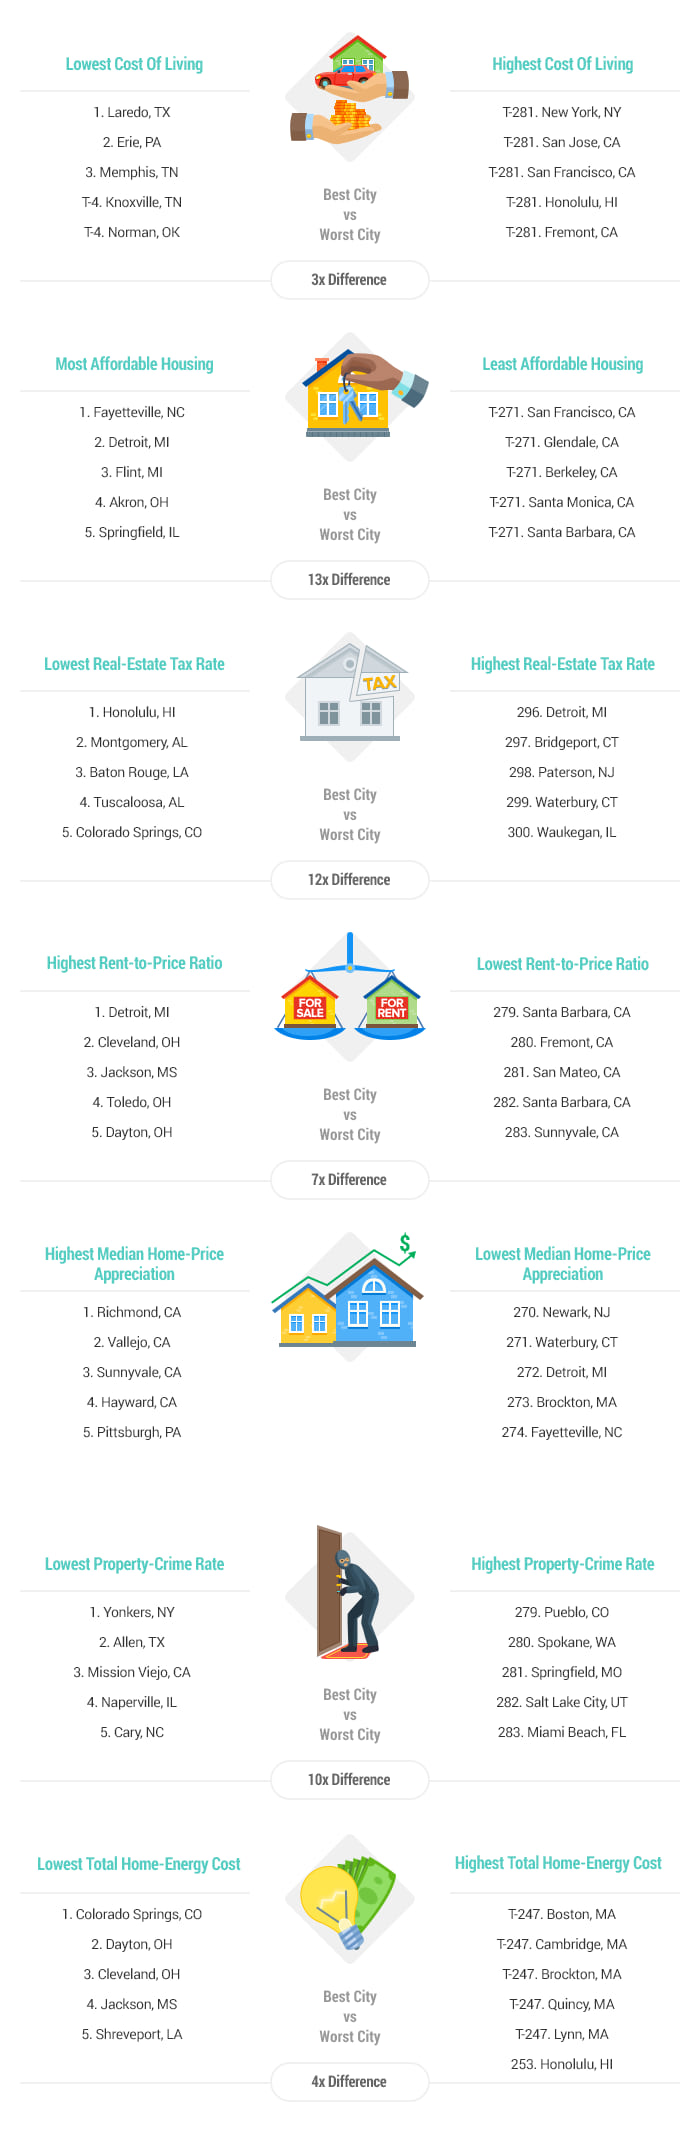 Artwork-2017-Best-Cities-for-First-Time-Home-Buyers